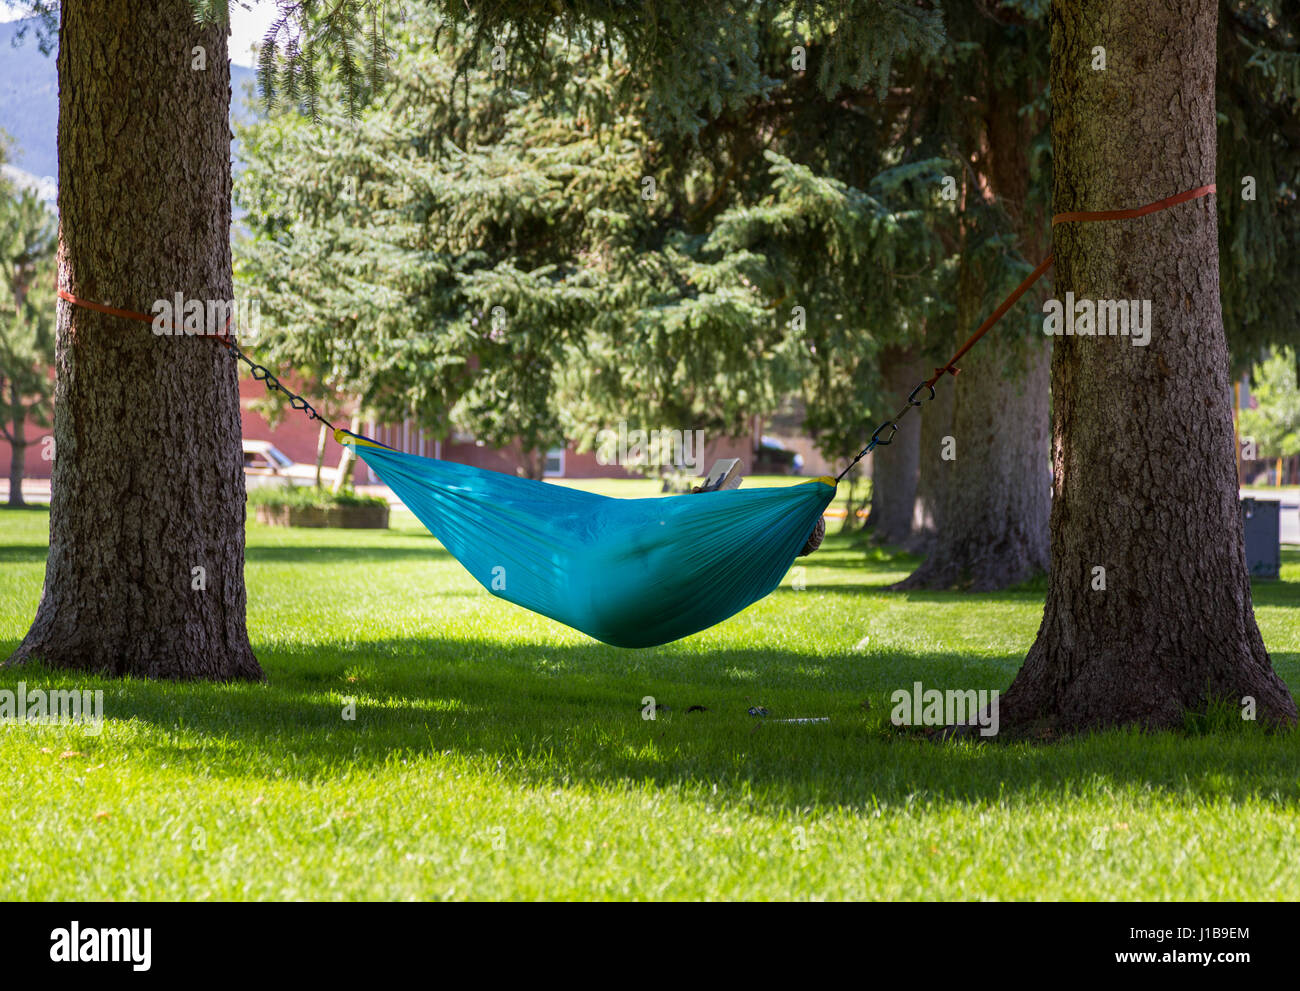 Large person relaxing reading in a hammock in a city park in Colorado, USA in summer - Stock Image